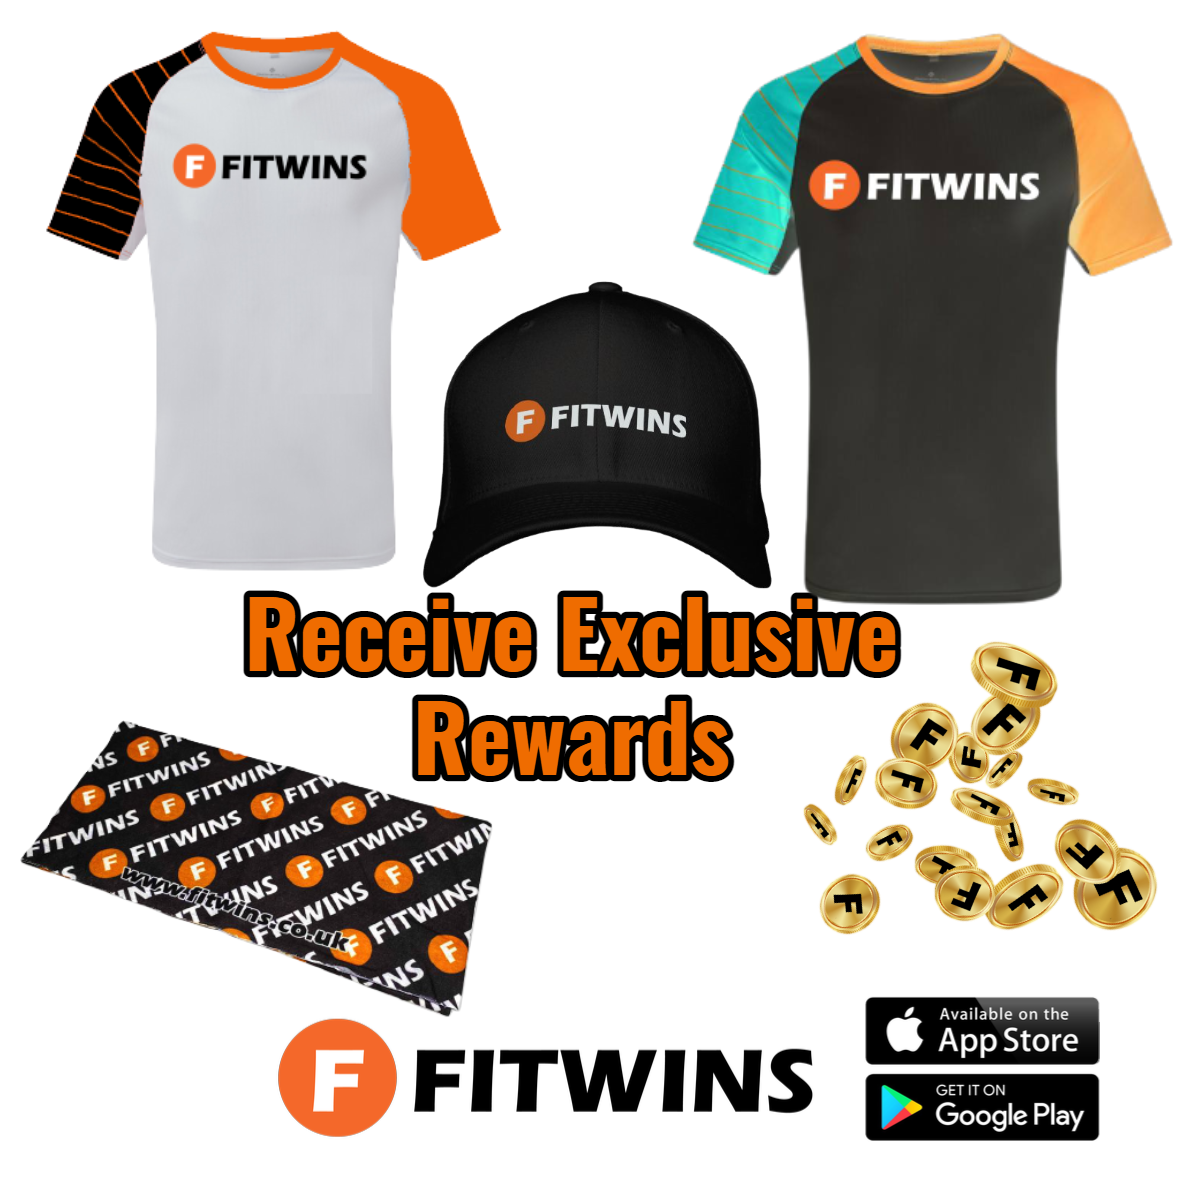 Fitwins Crowdfunder